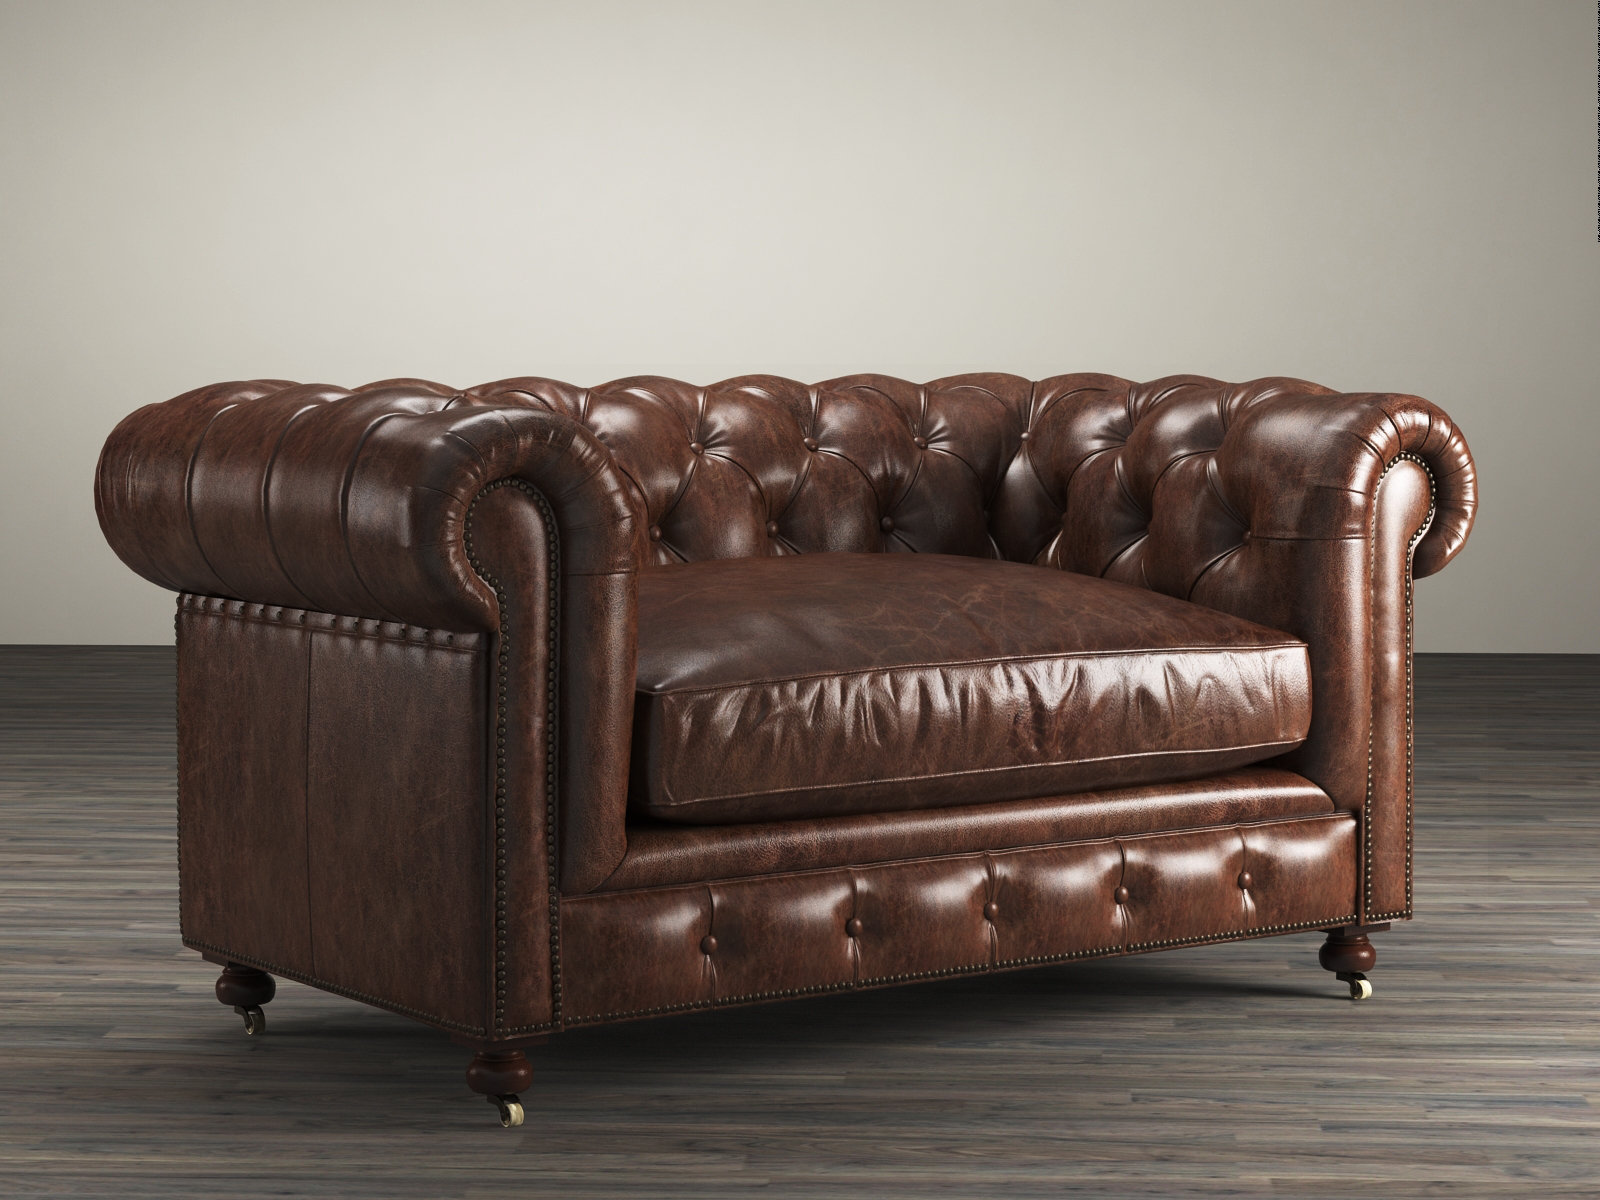 Restoration Hardware Leather : Quot kensington leather sofa d model restoration hardware